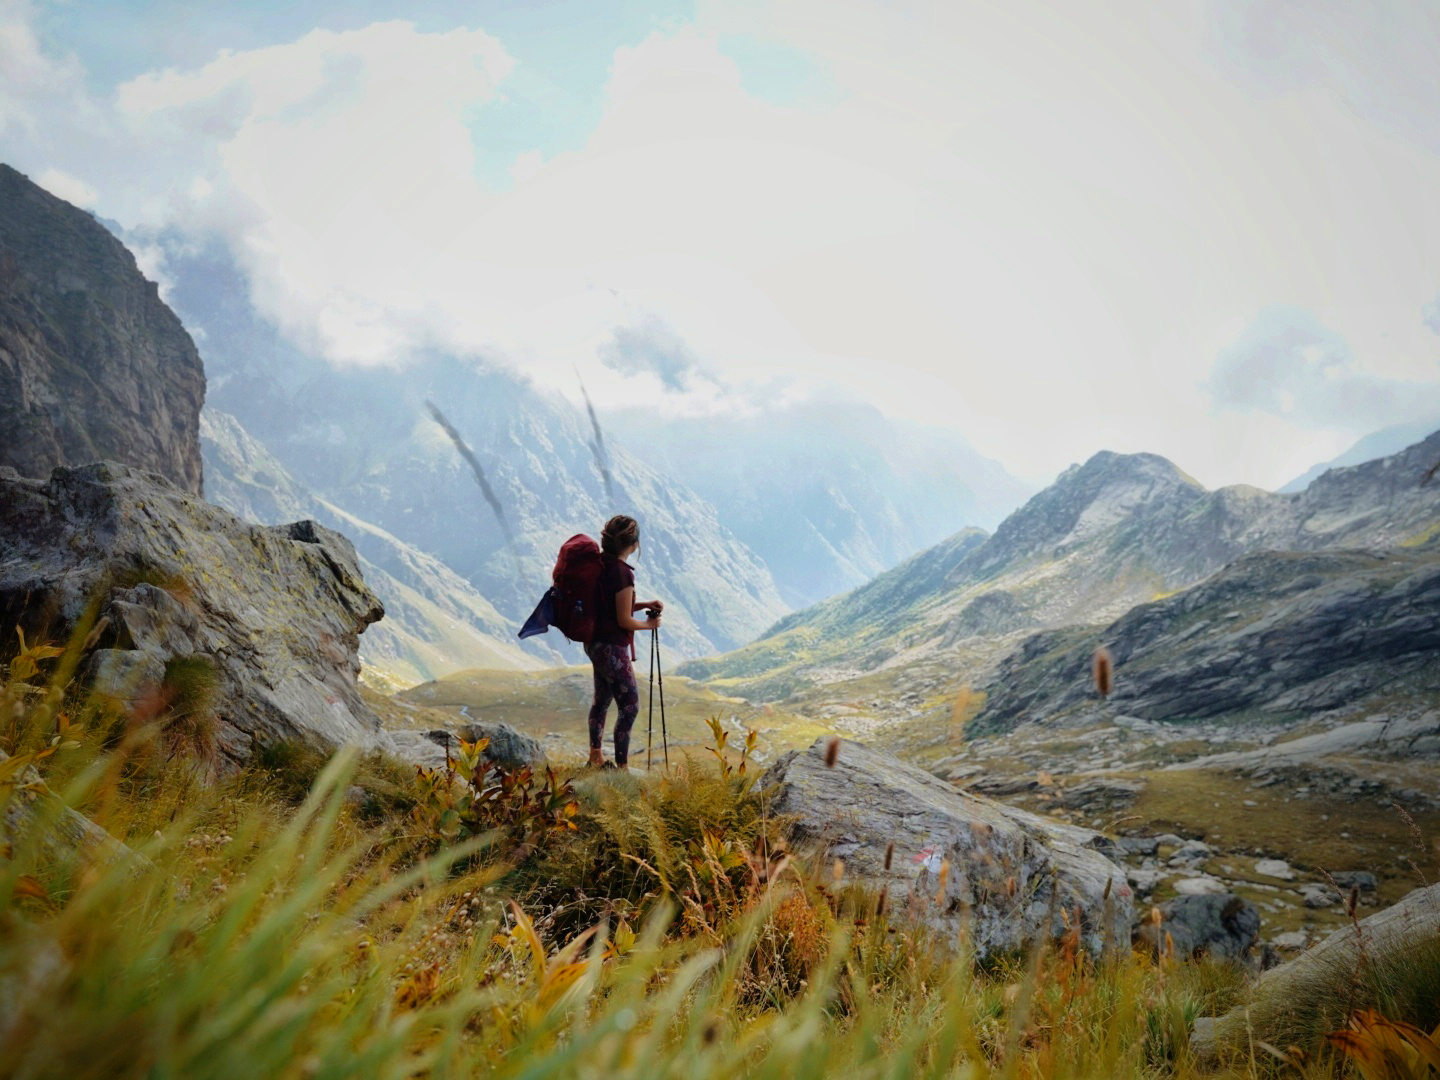 A solo backpacker crossing an alpine pass